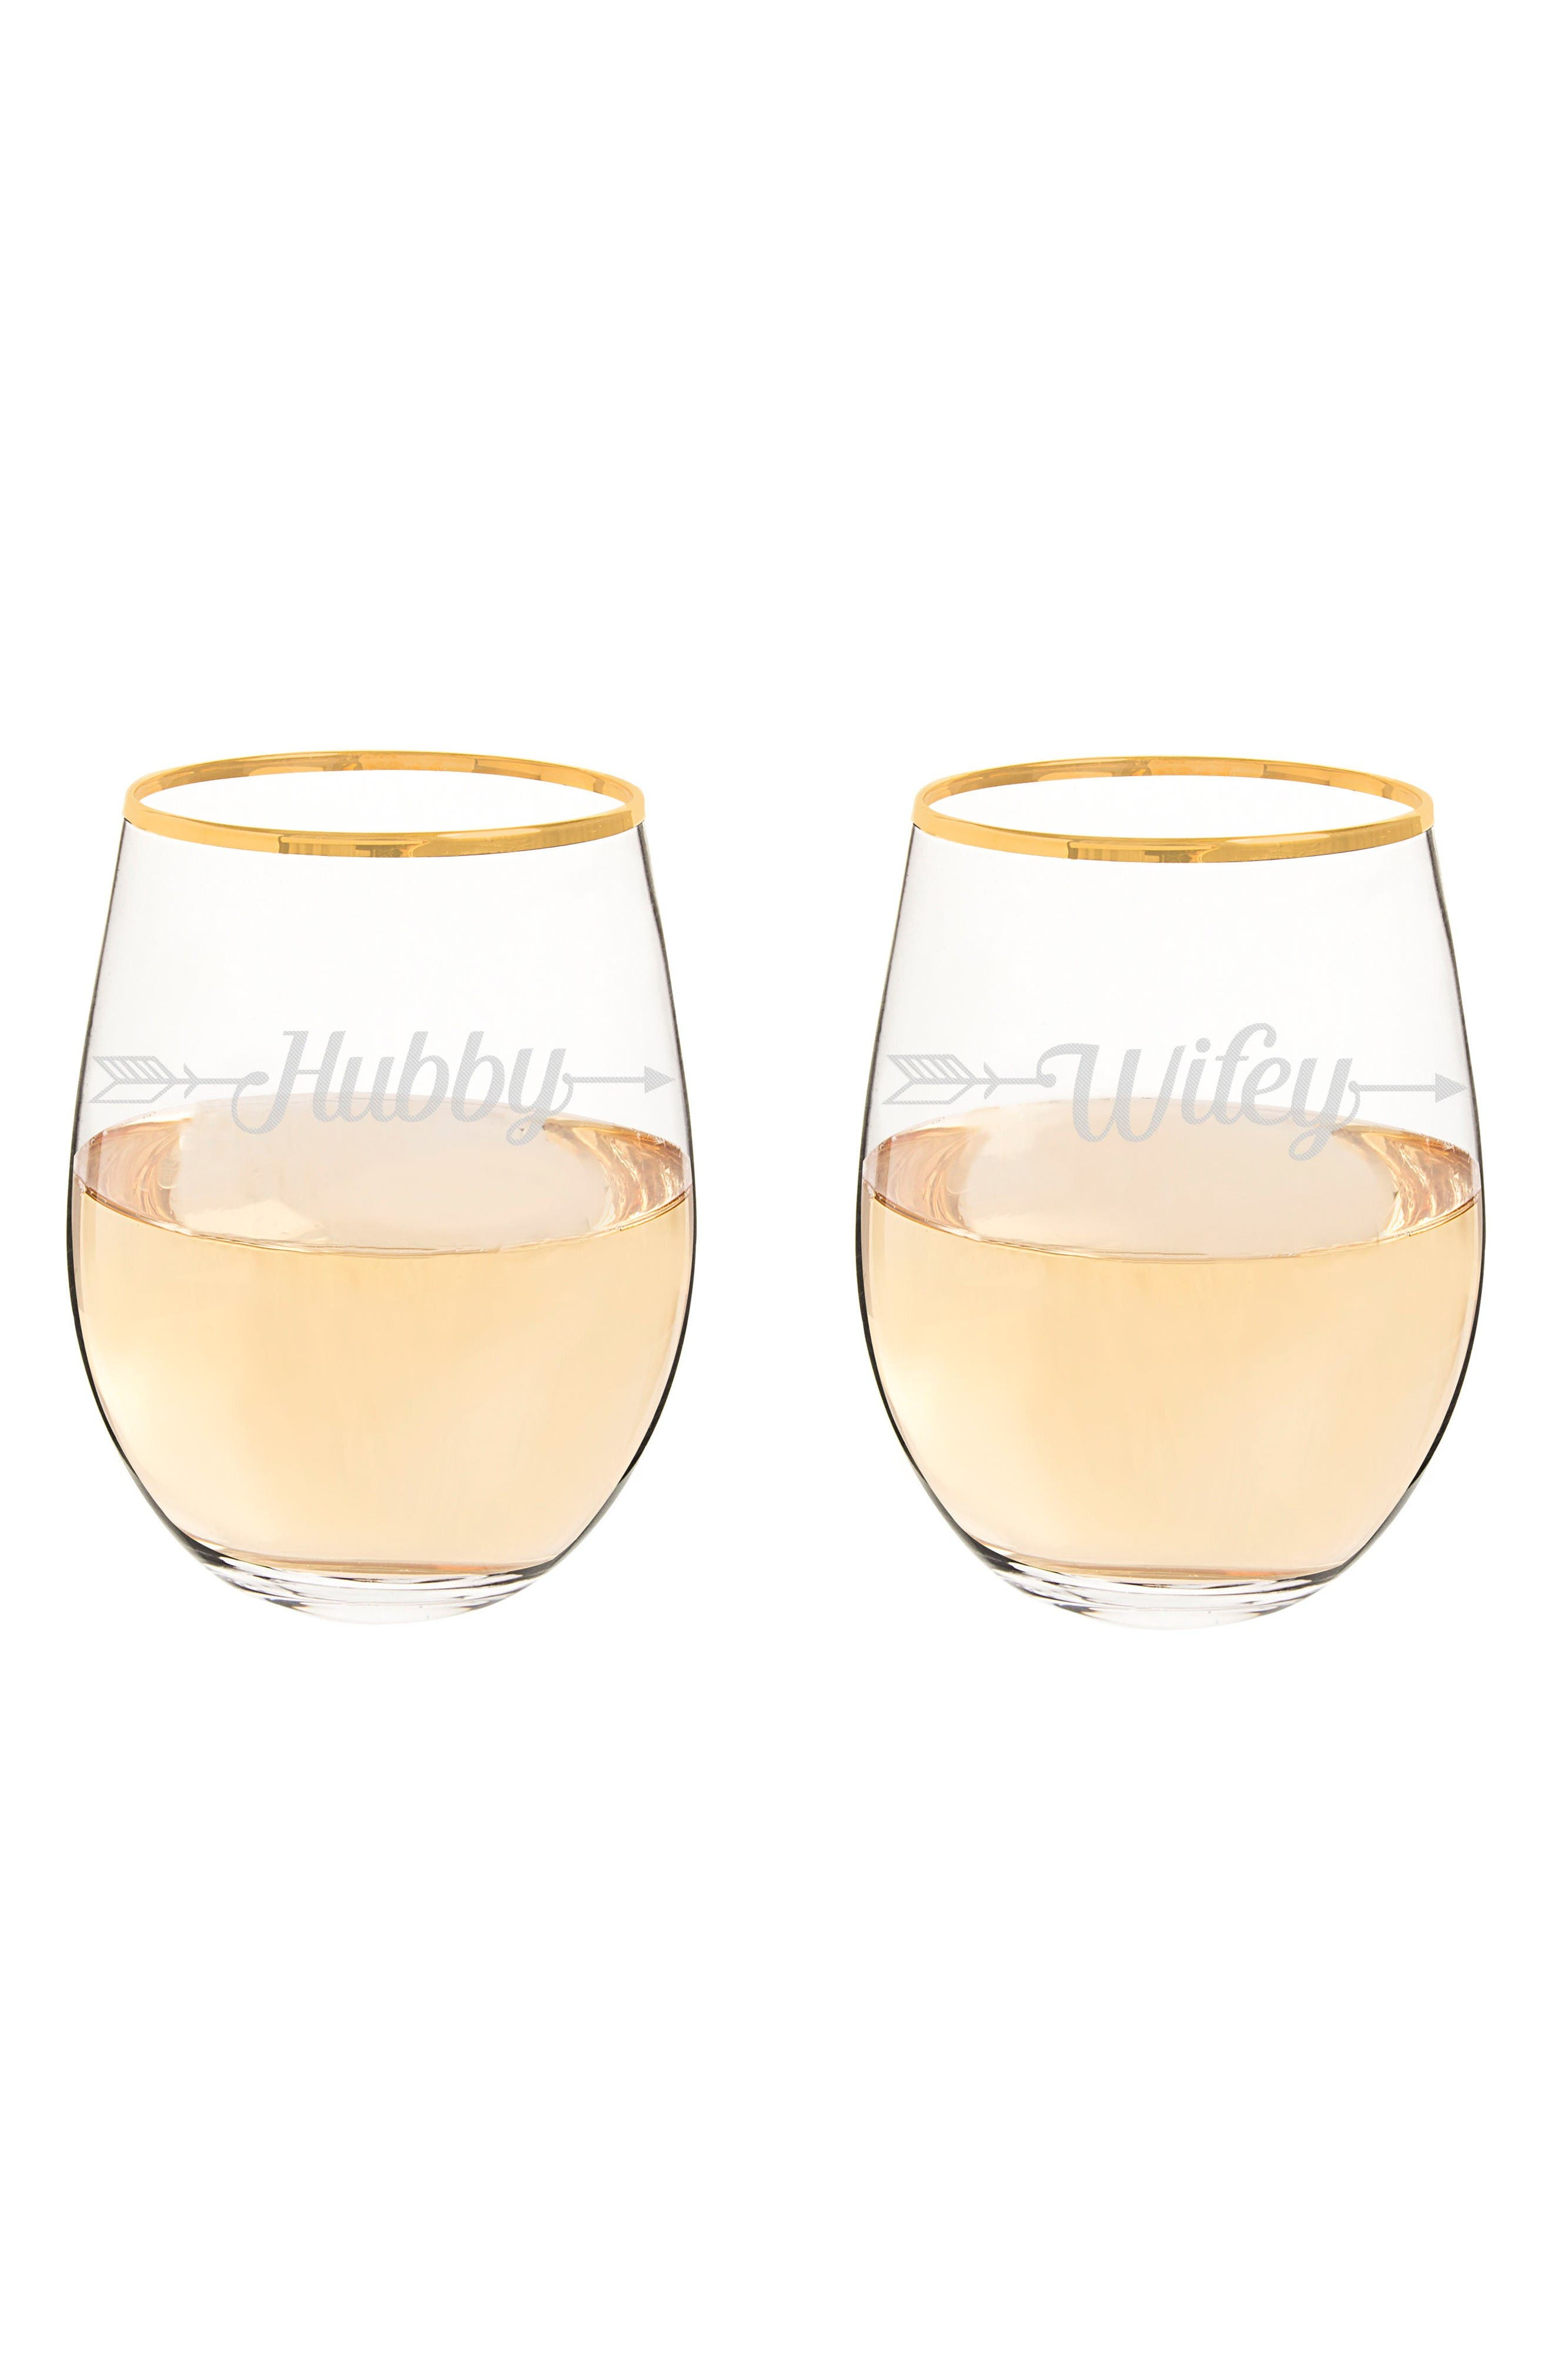 Hubby/Wifey Set of 2 Gold Rimmed Stemless Wine Glasses,                         Main,                         color, Gold